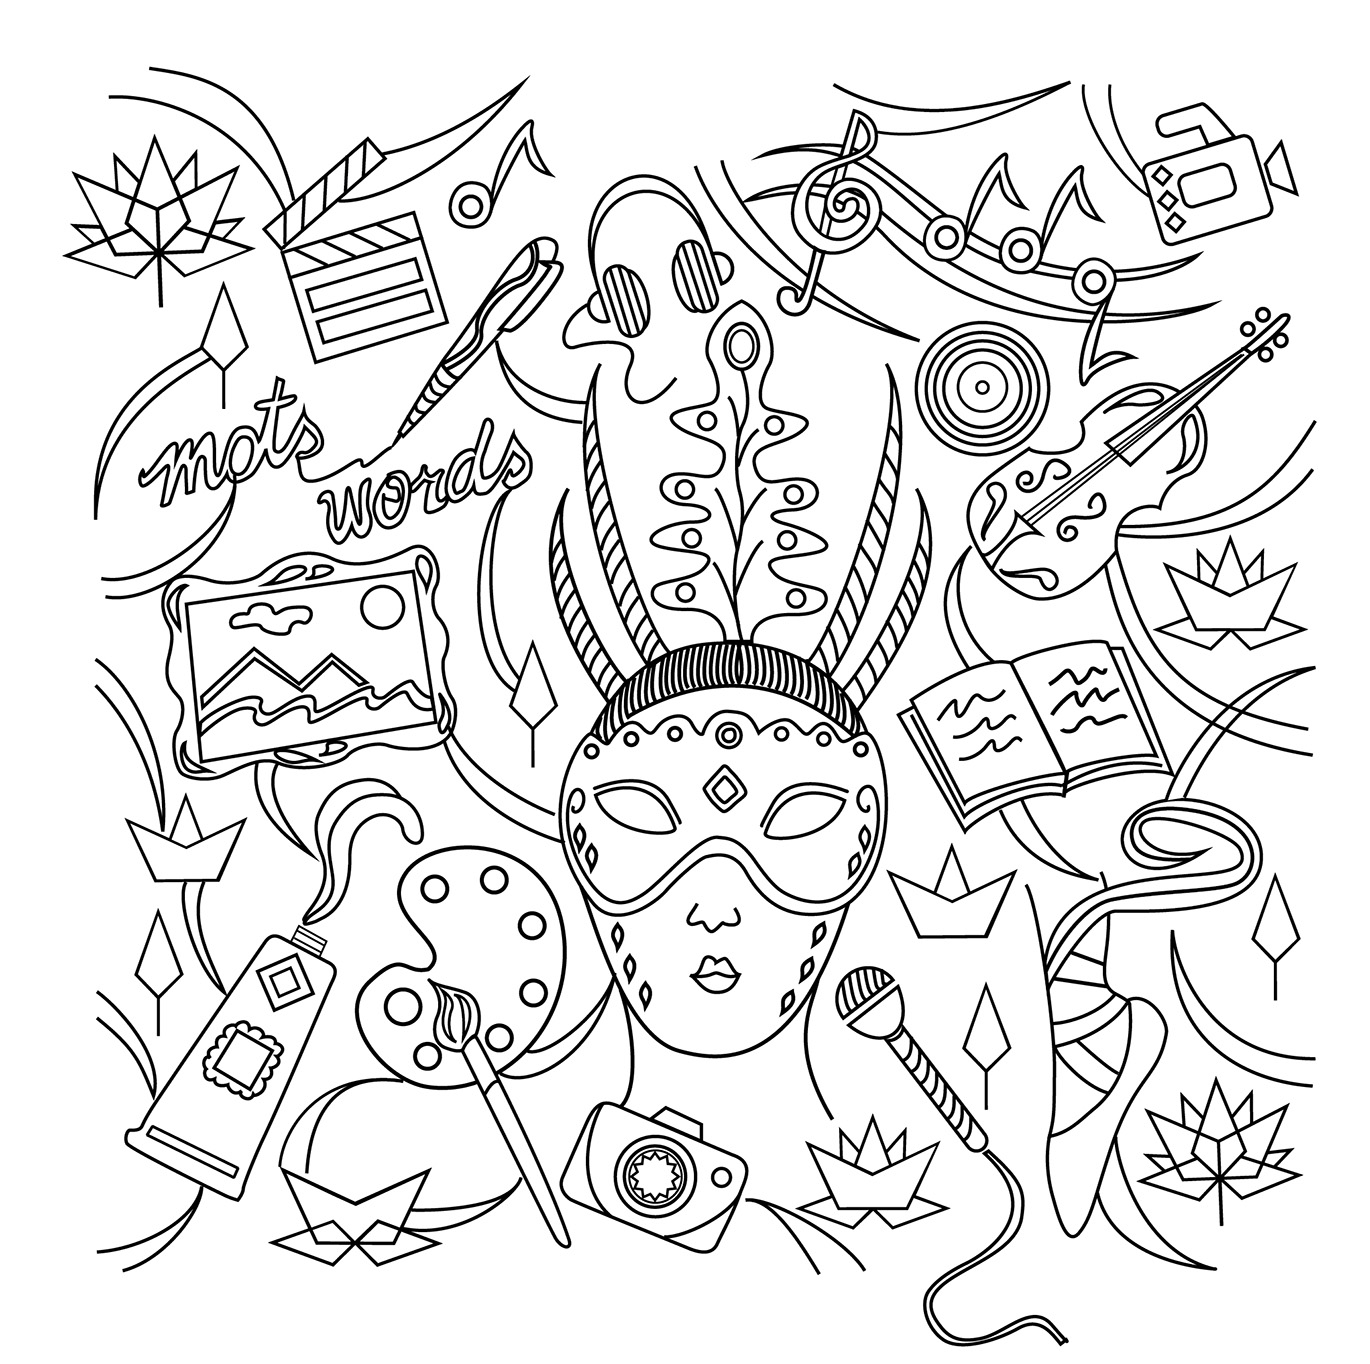 A book of canadian innovation canadian intellectual property office colouring page featuring sample items that could be subject matter for copyright registration and a description biocorpaavc Images